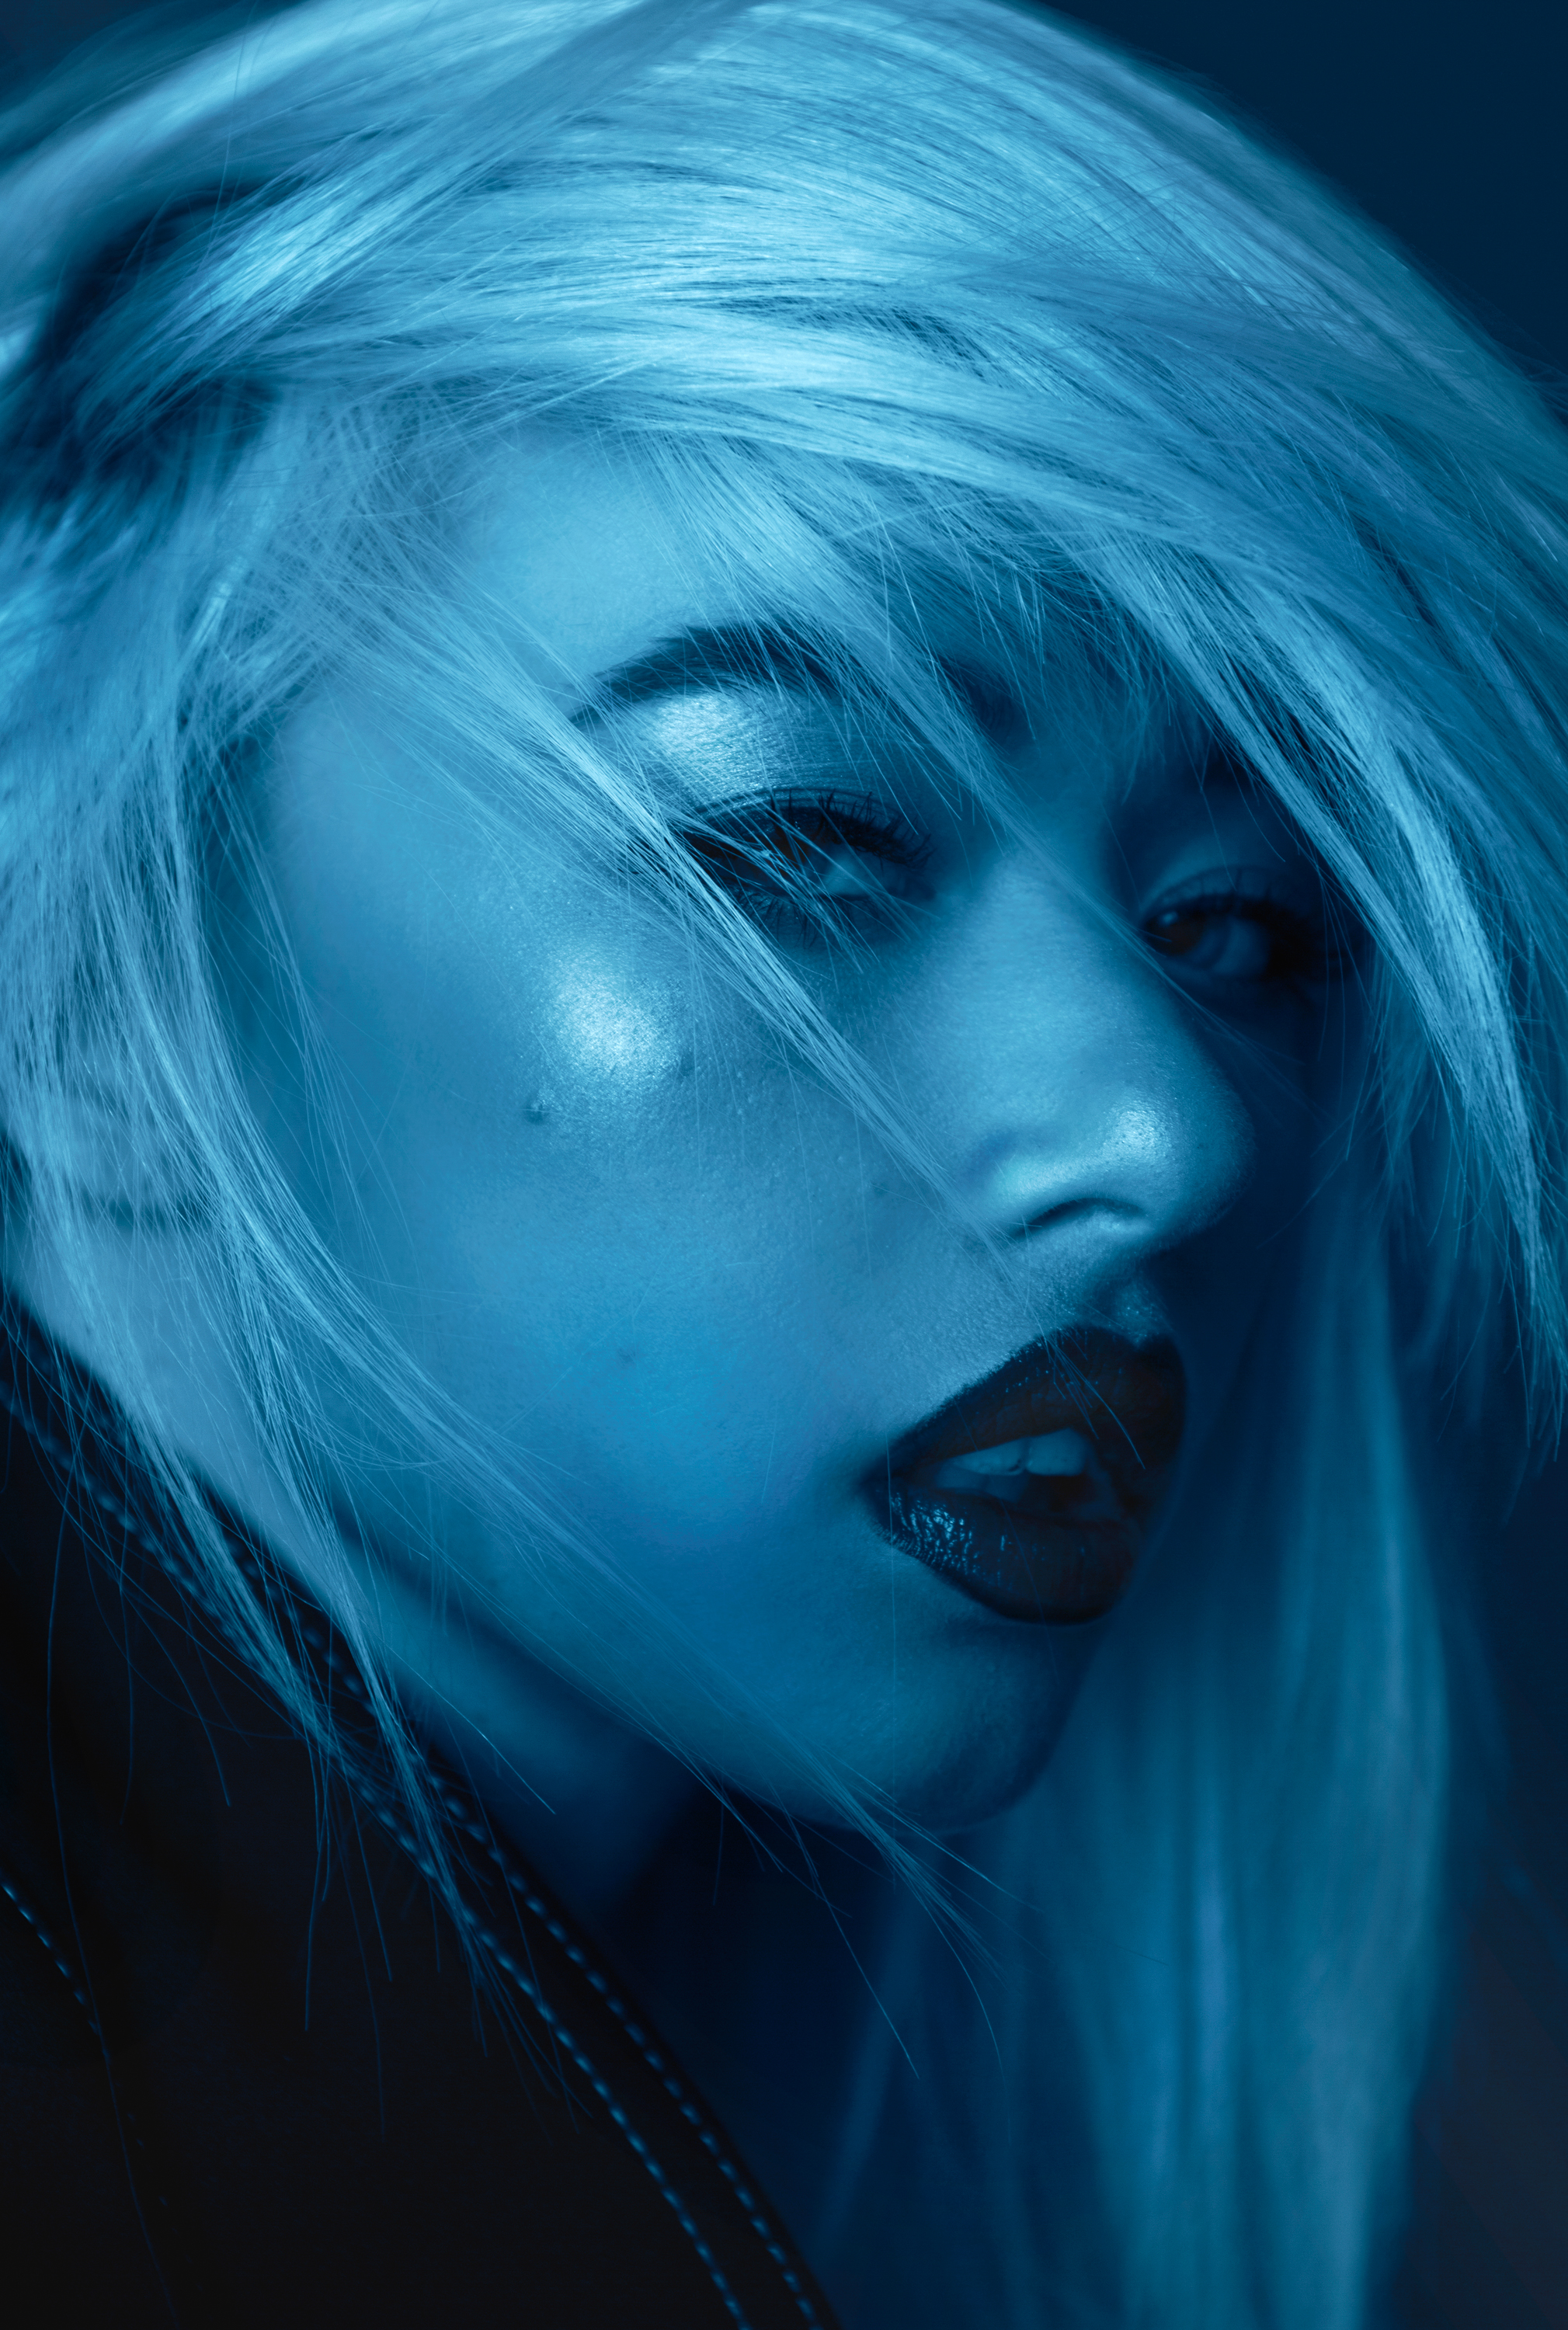 Sev_Blue_BeautyPortrait_Gritty_02.jpg